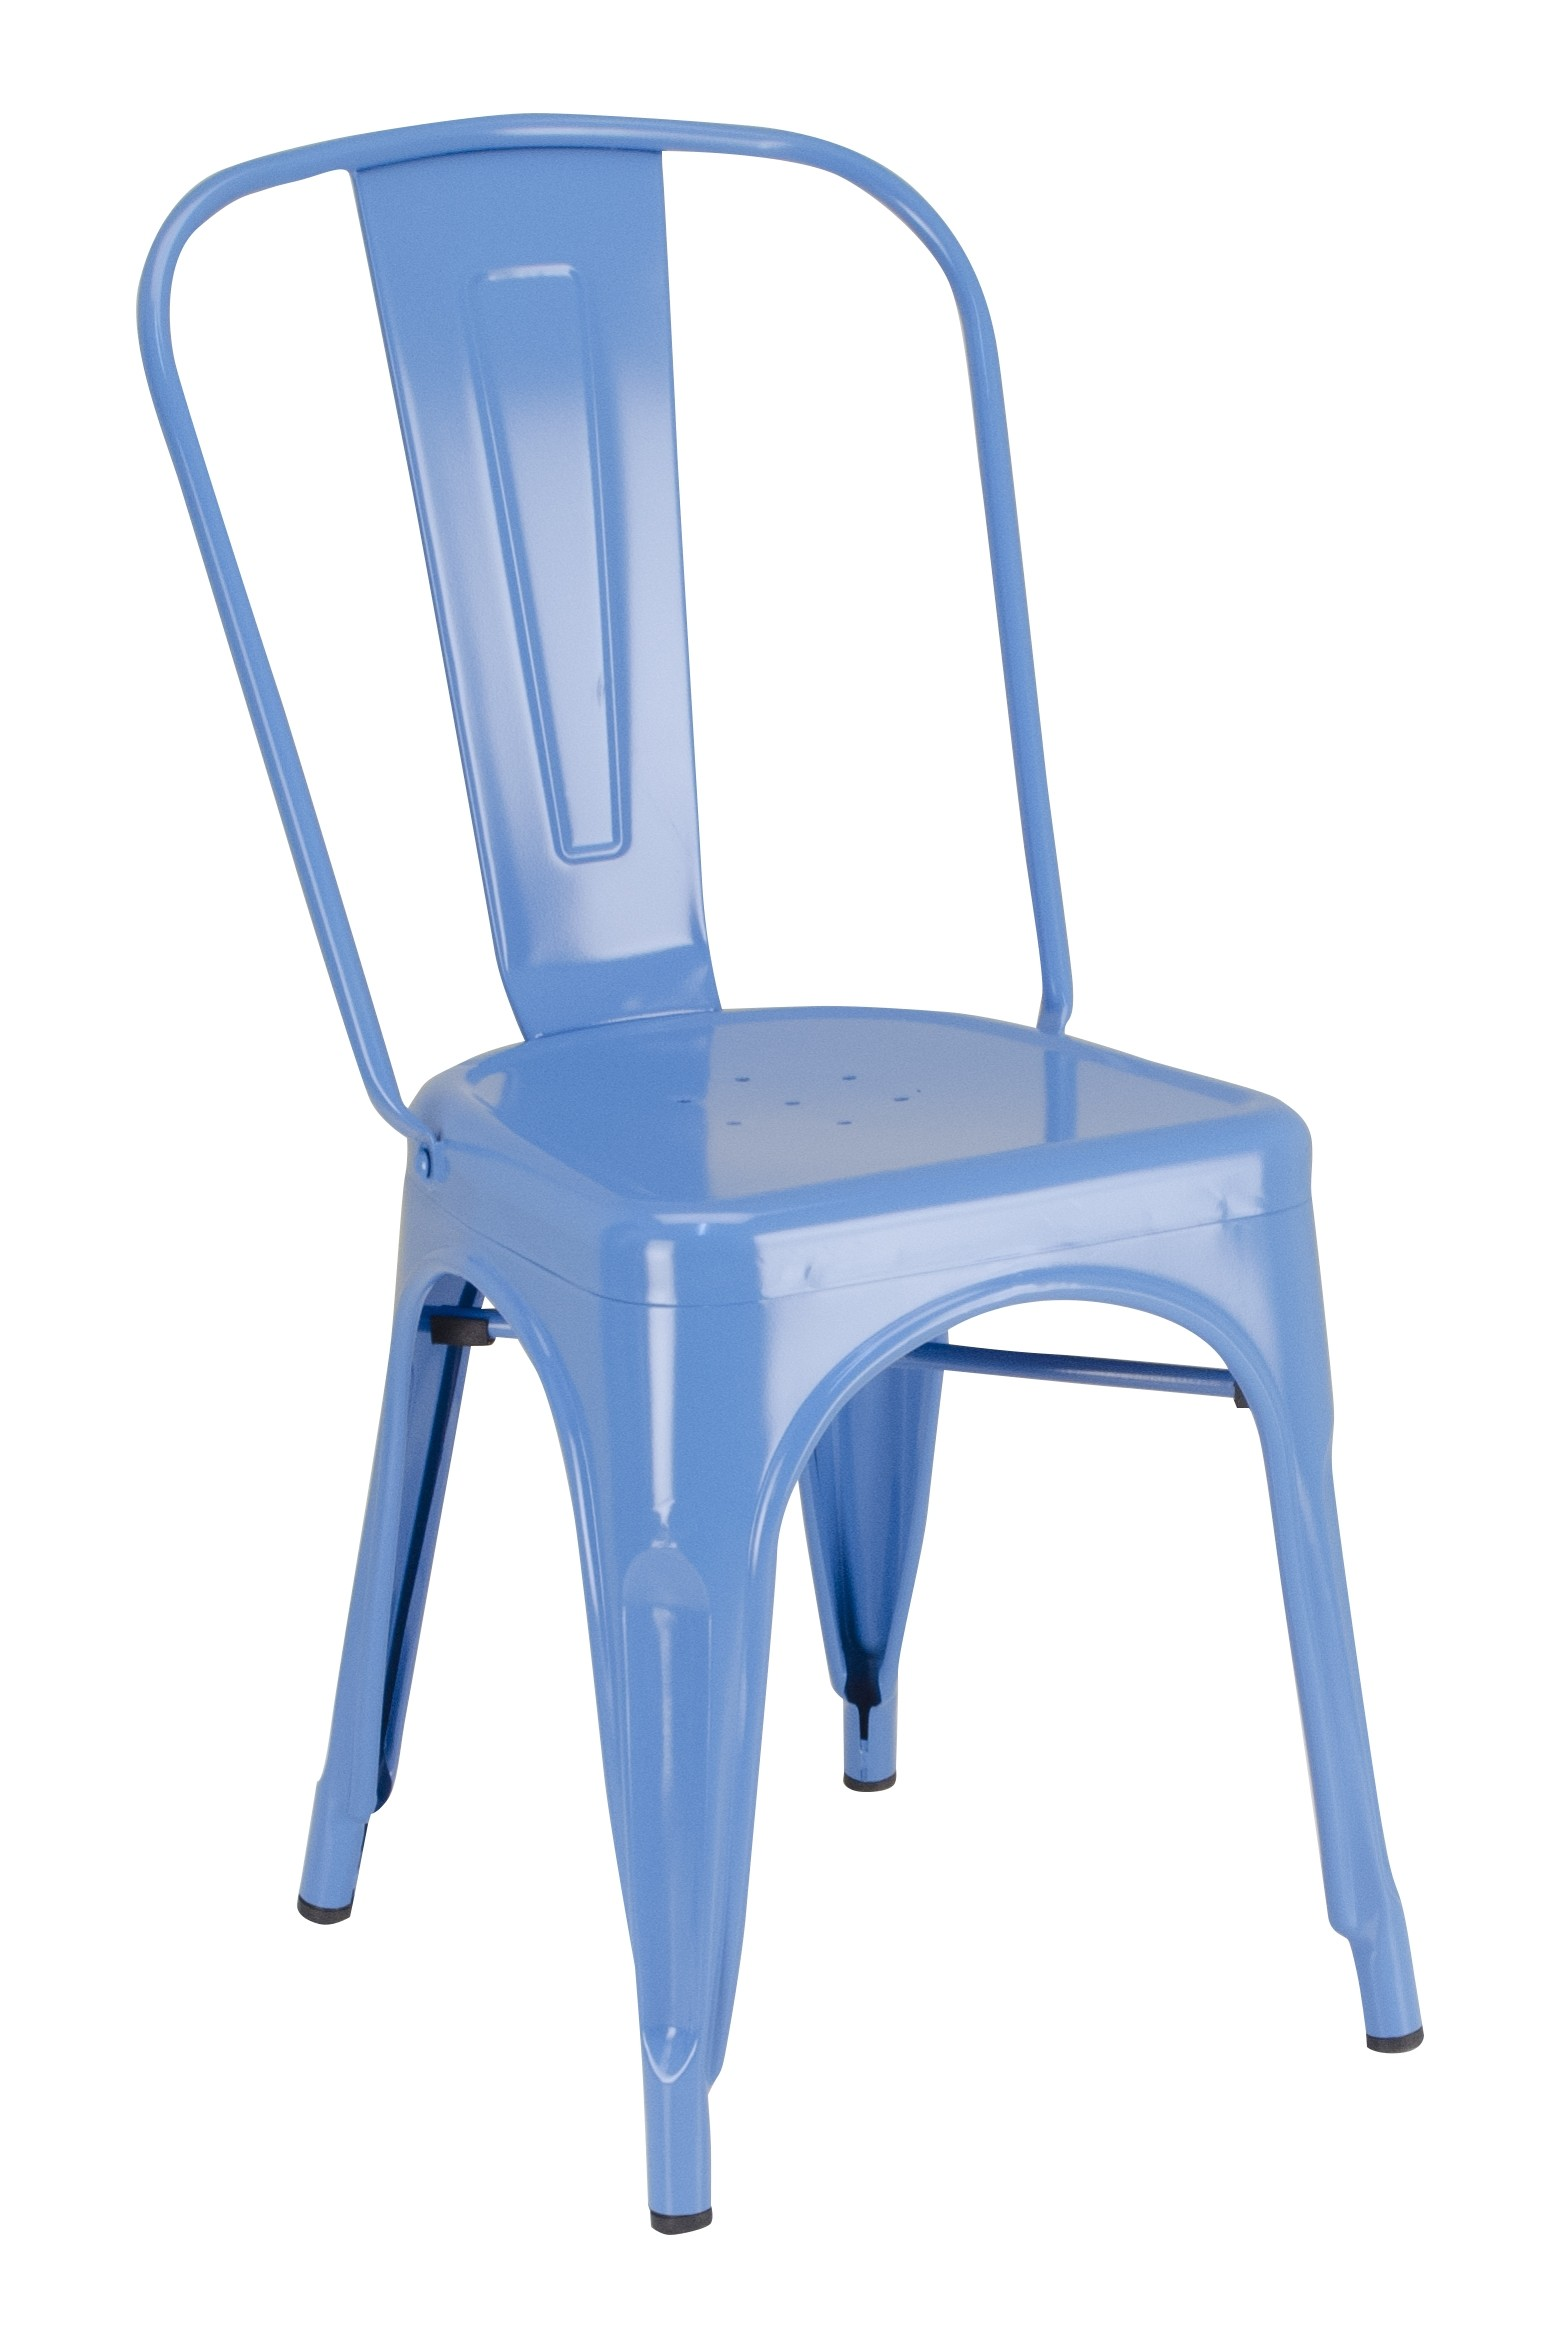 Calais Metal Dining Chair   Blue | Restaurant Furniture, Commercial Bar  Furniture | Plymold Essentials